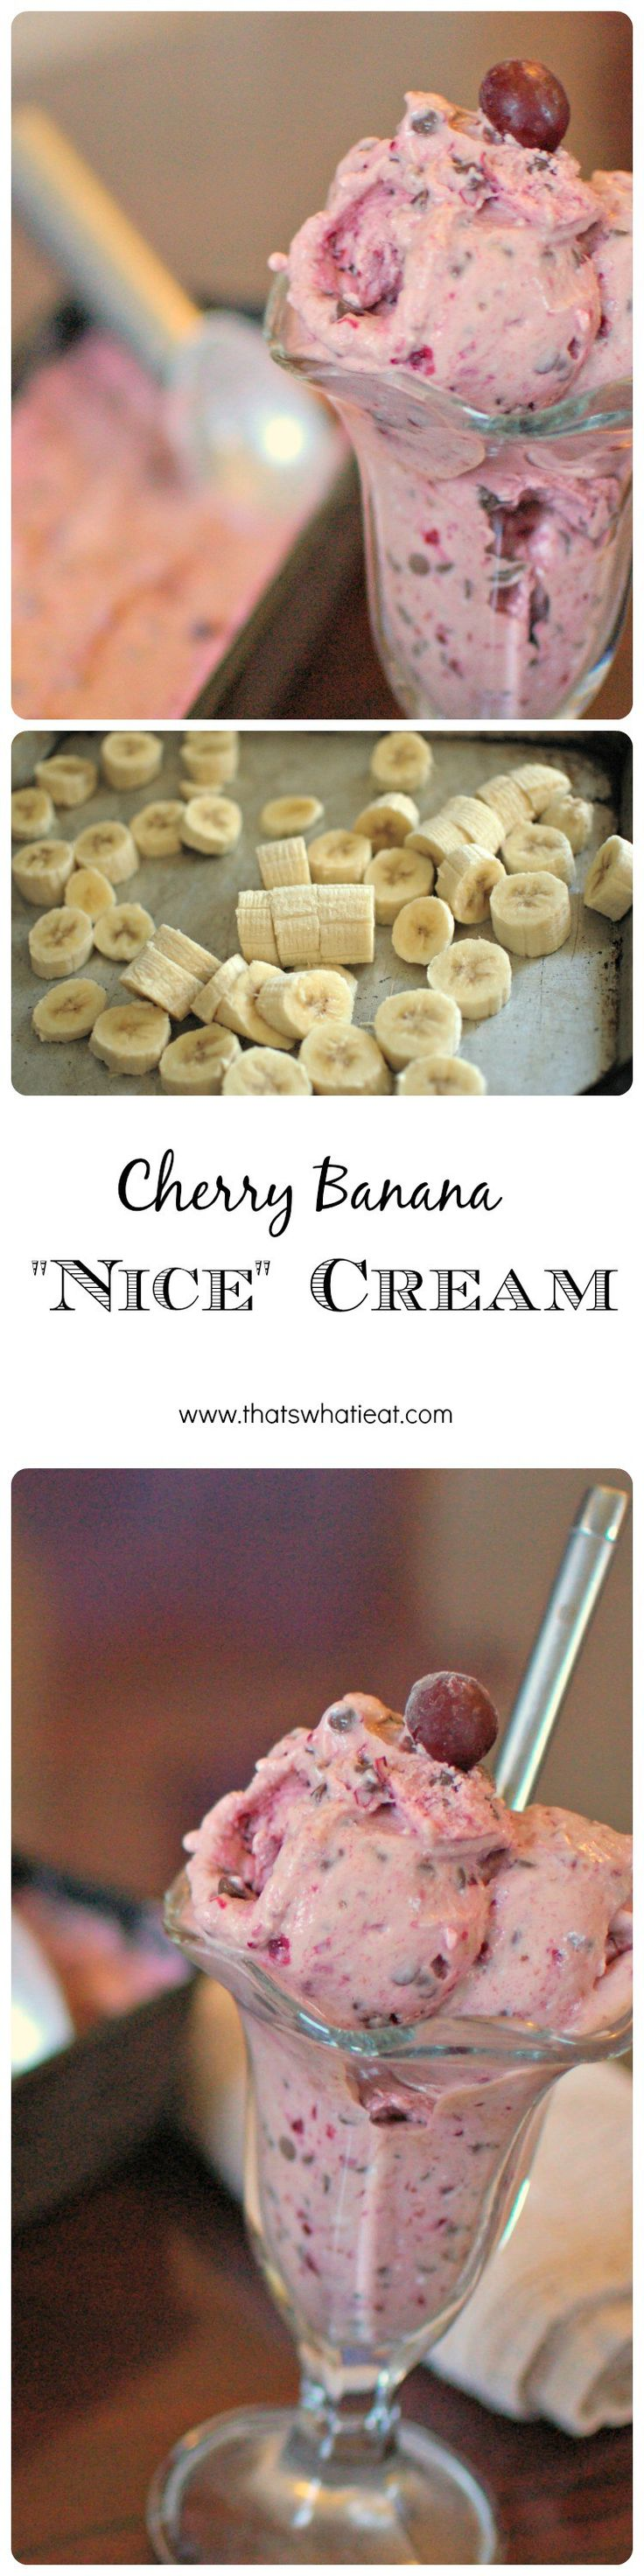 A delicious dessert that you don't have to feel guilty about? Yes, please!! Love this cherry banana nice cream recipe!